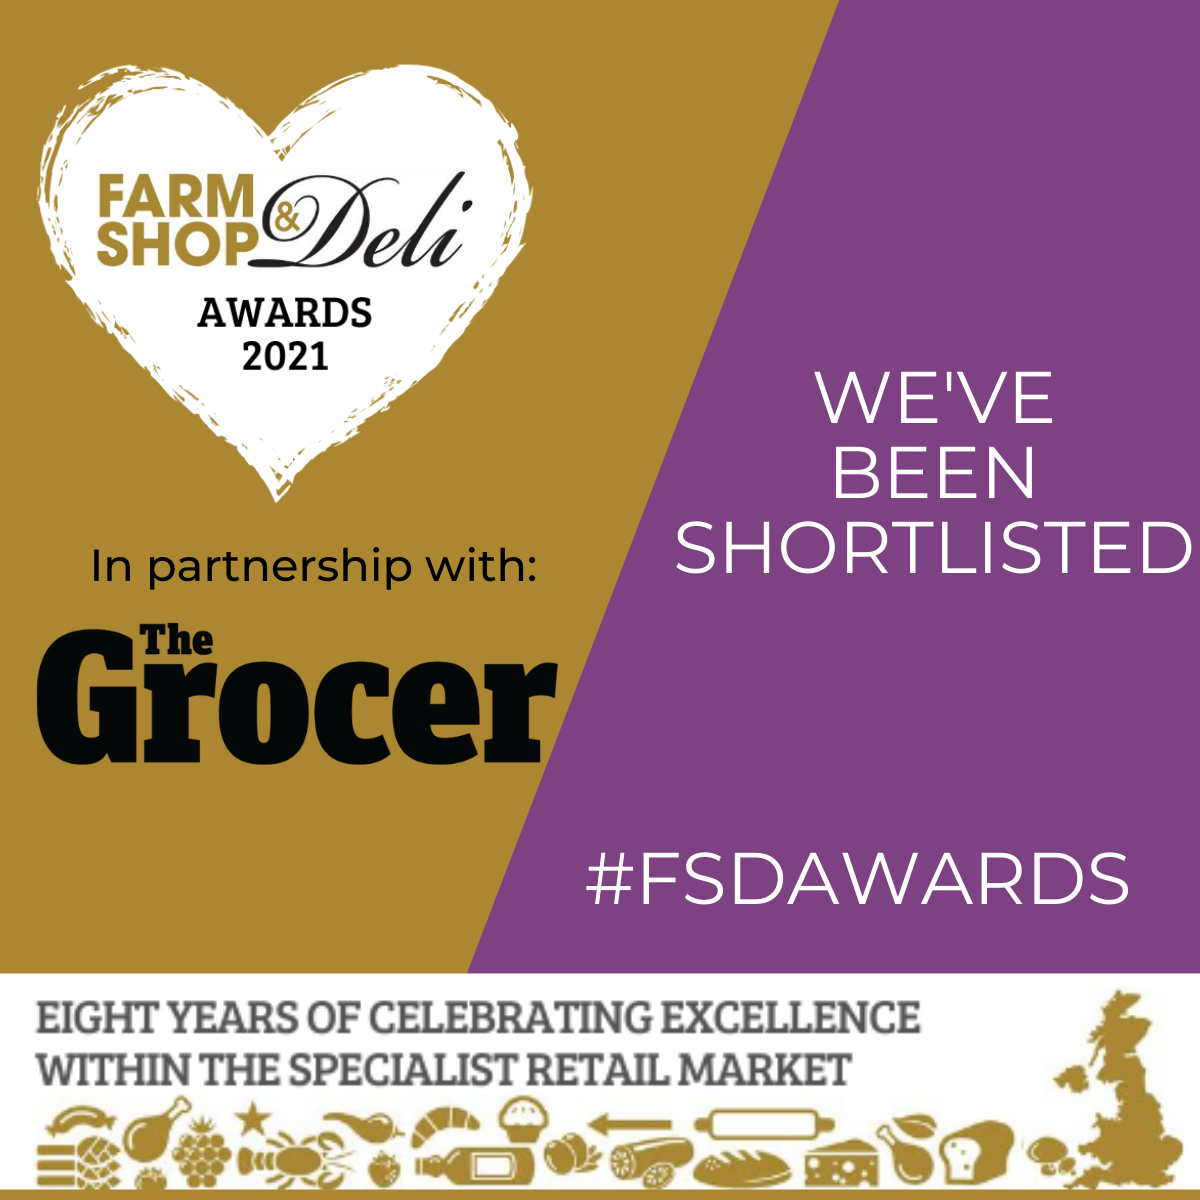 farm shop deli retail awards 2021 shortlisted